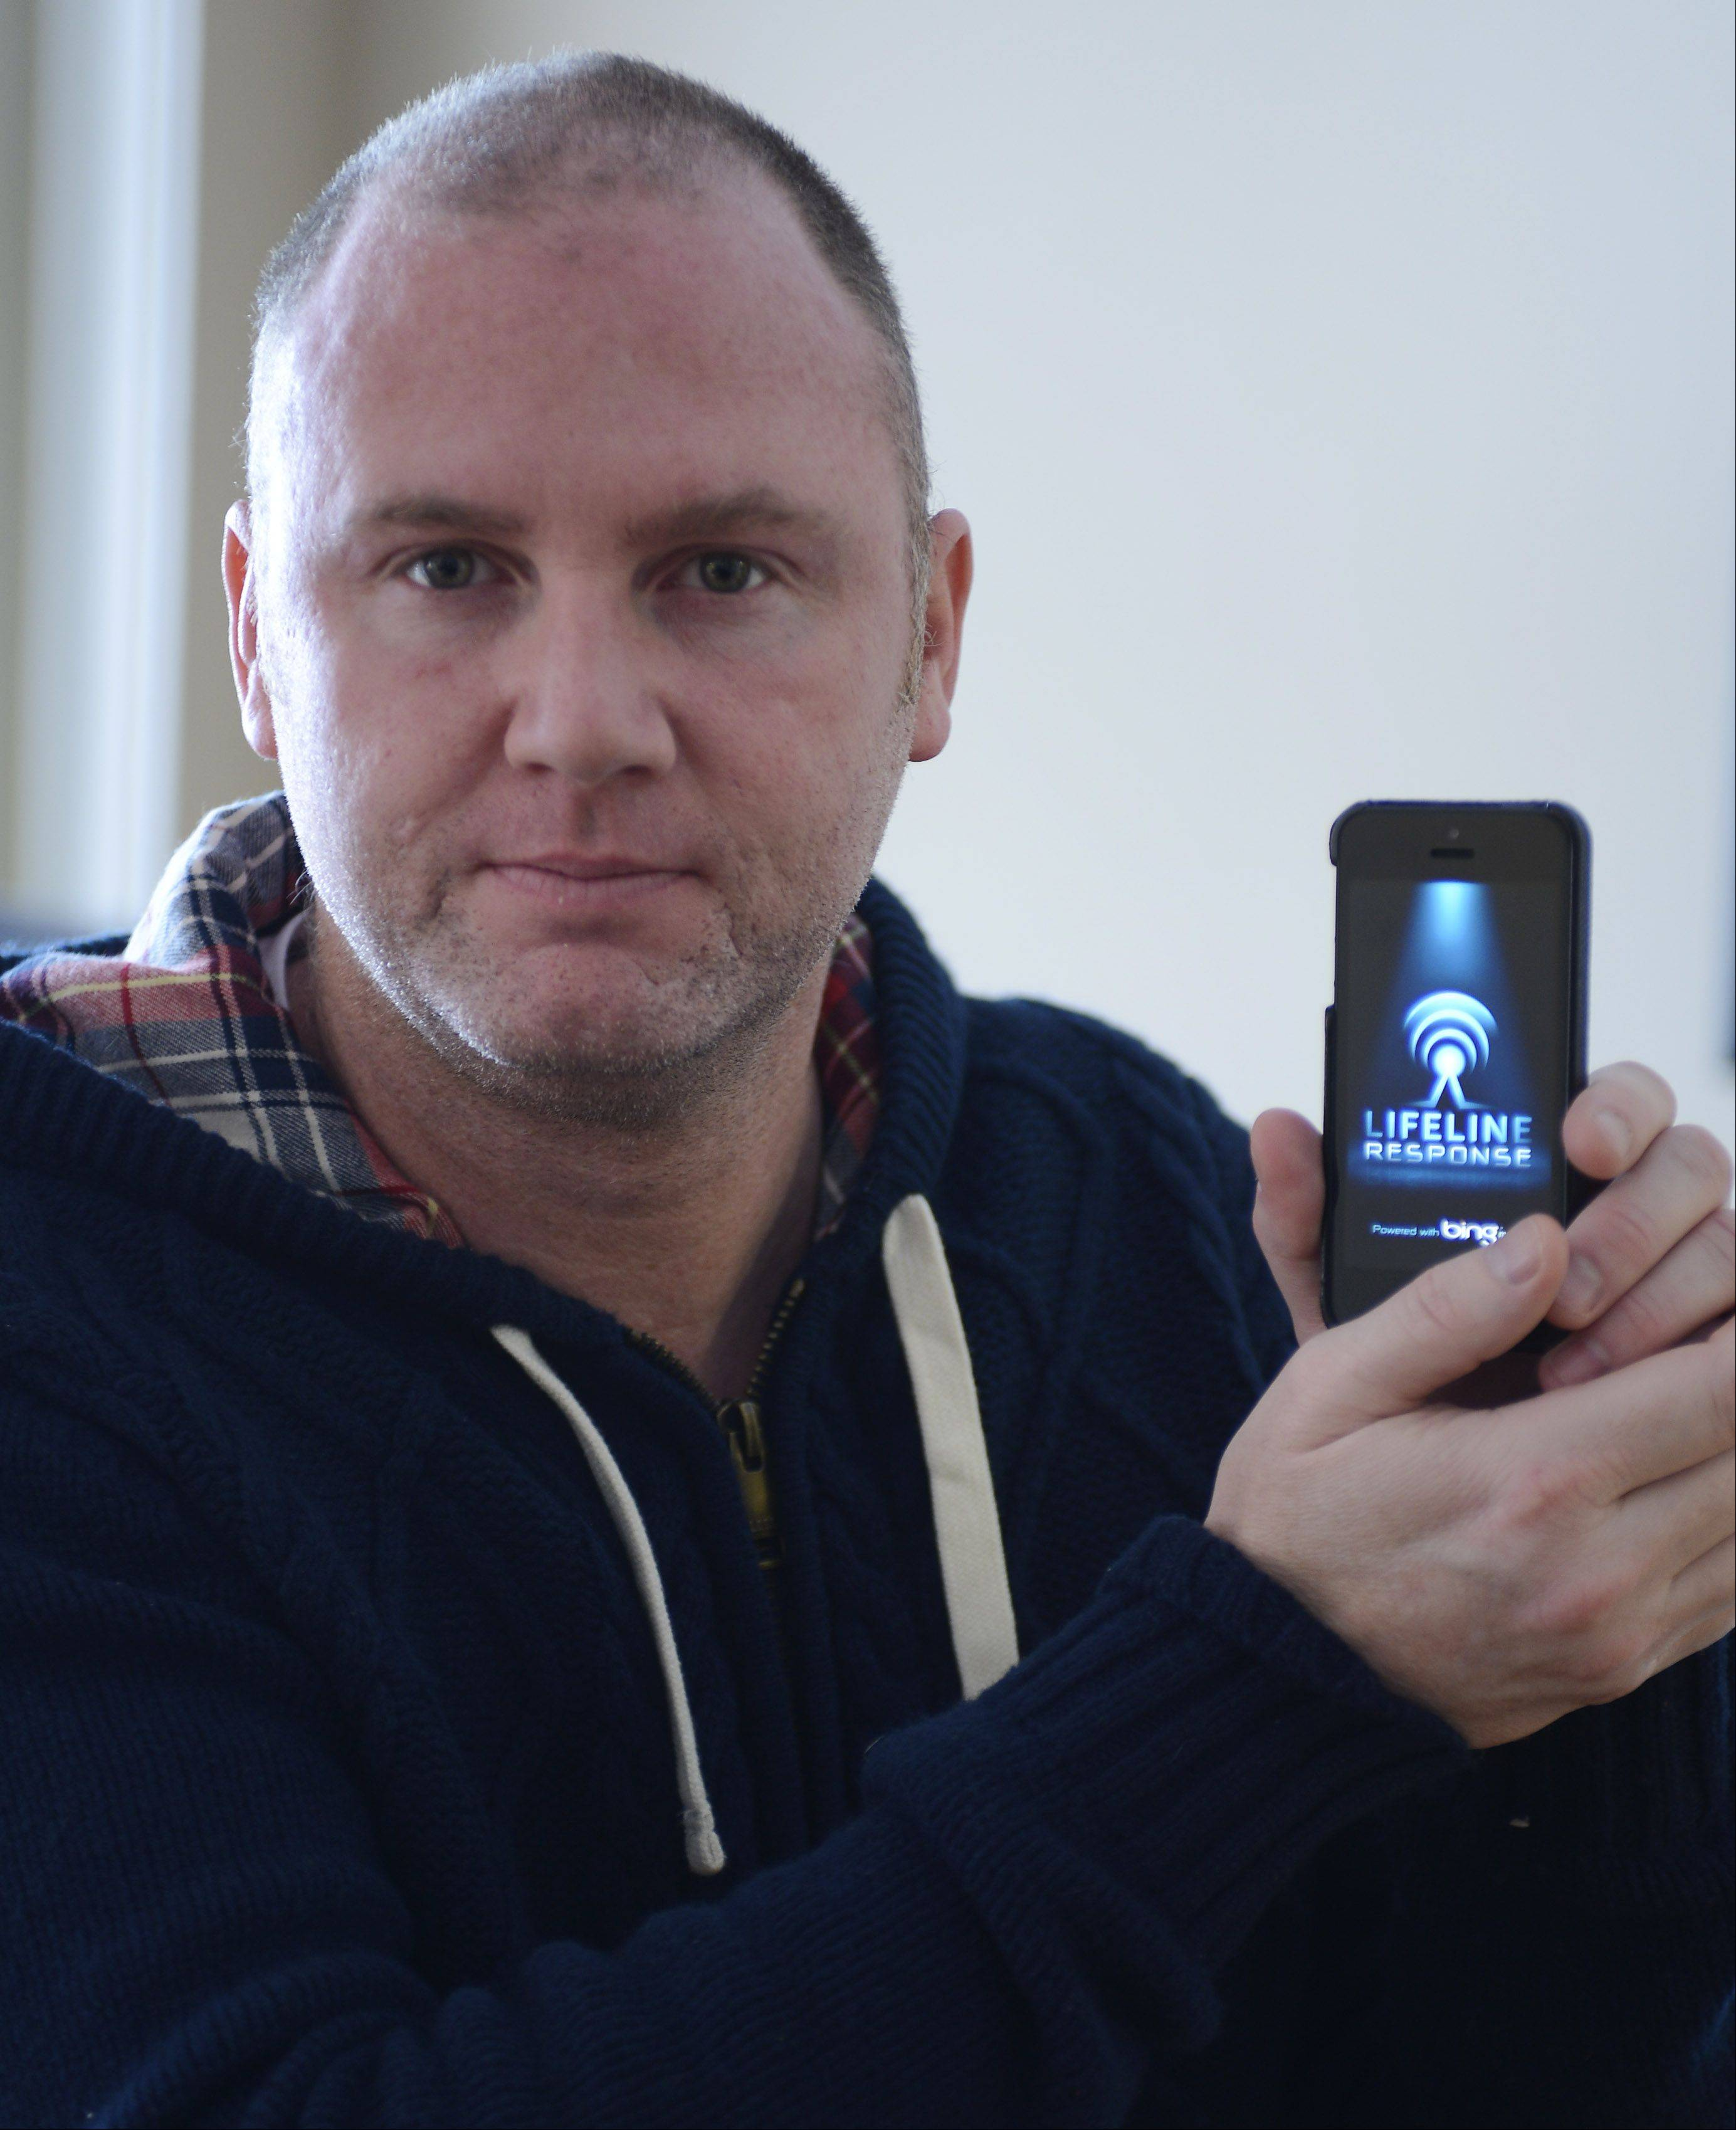 Peter Cahill of Arlington Heights has developed a personal security smartphone app.